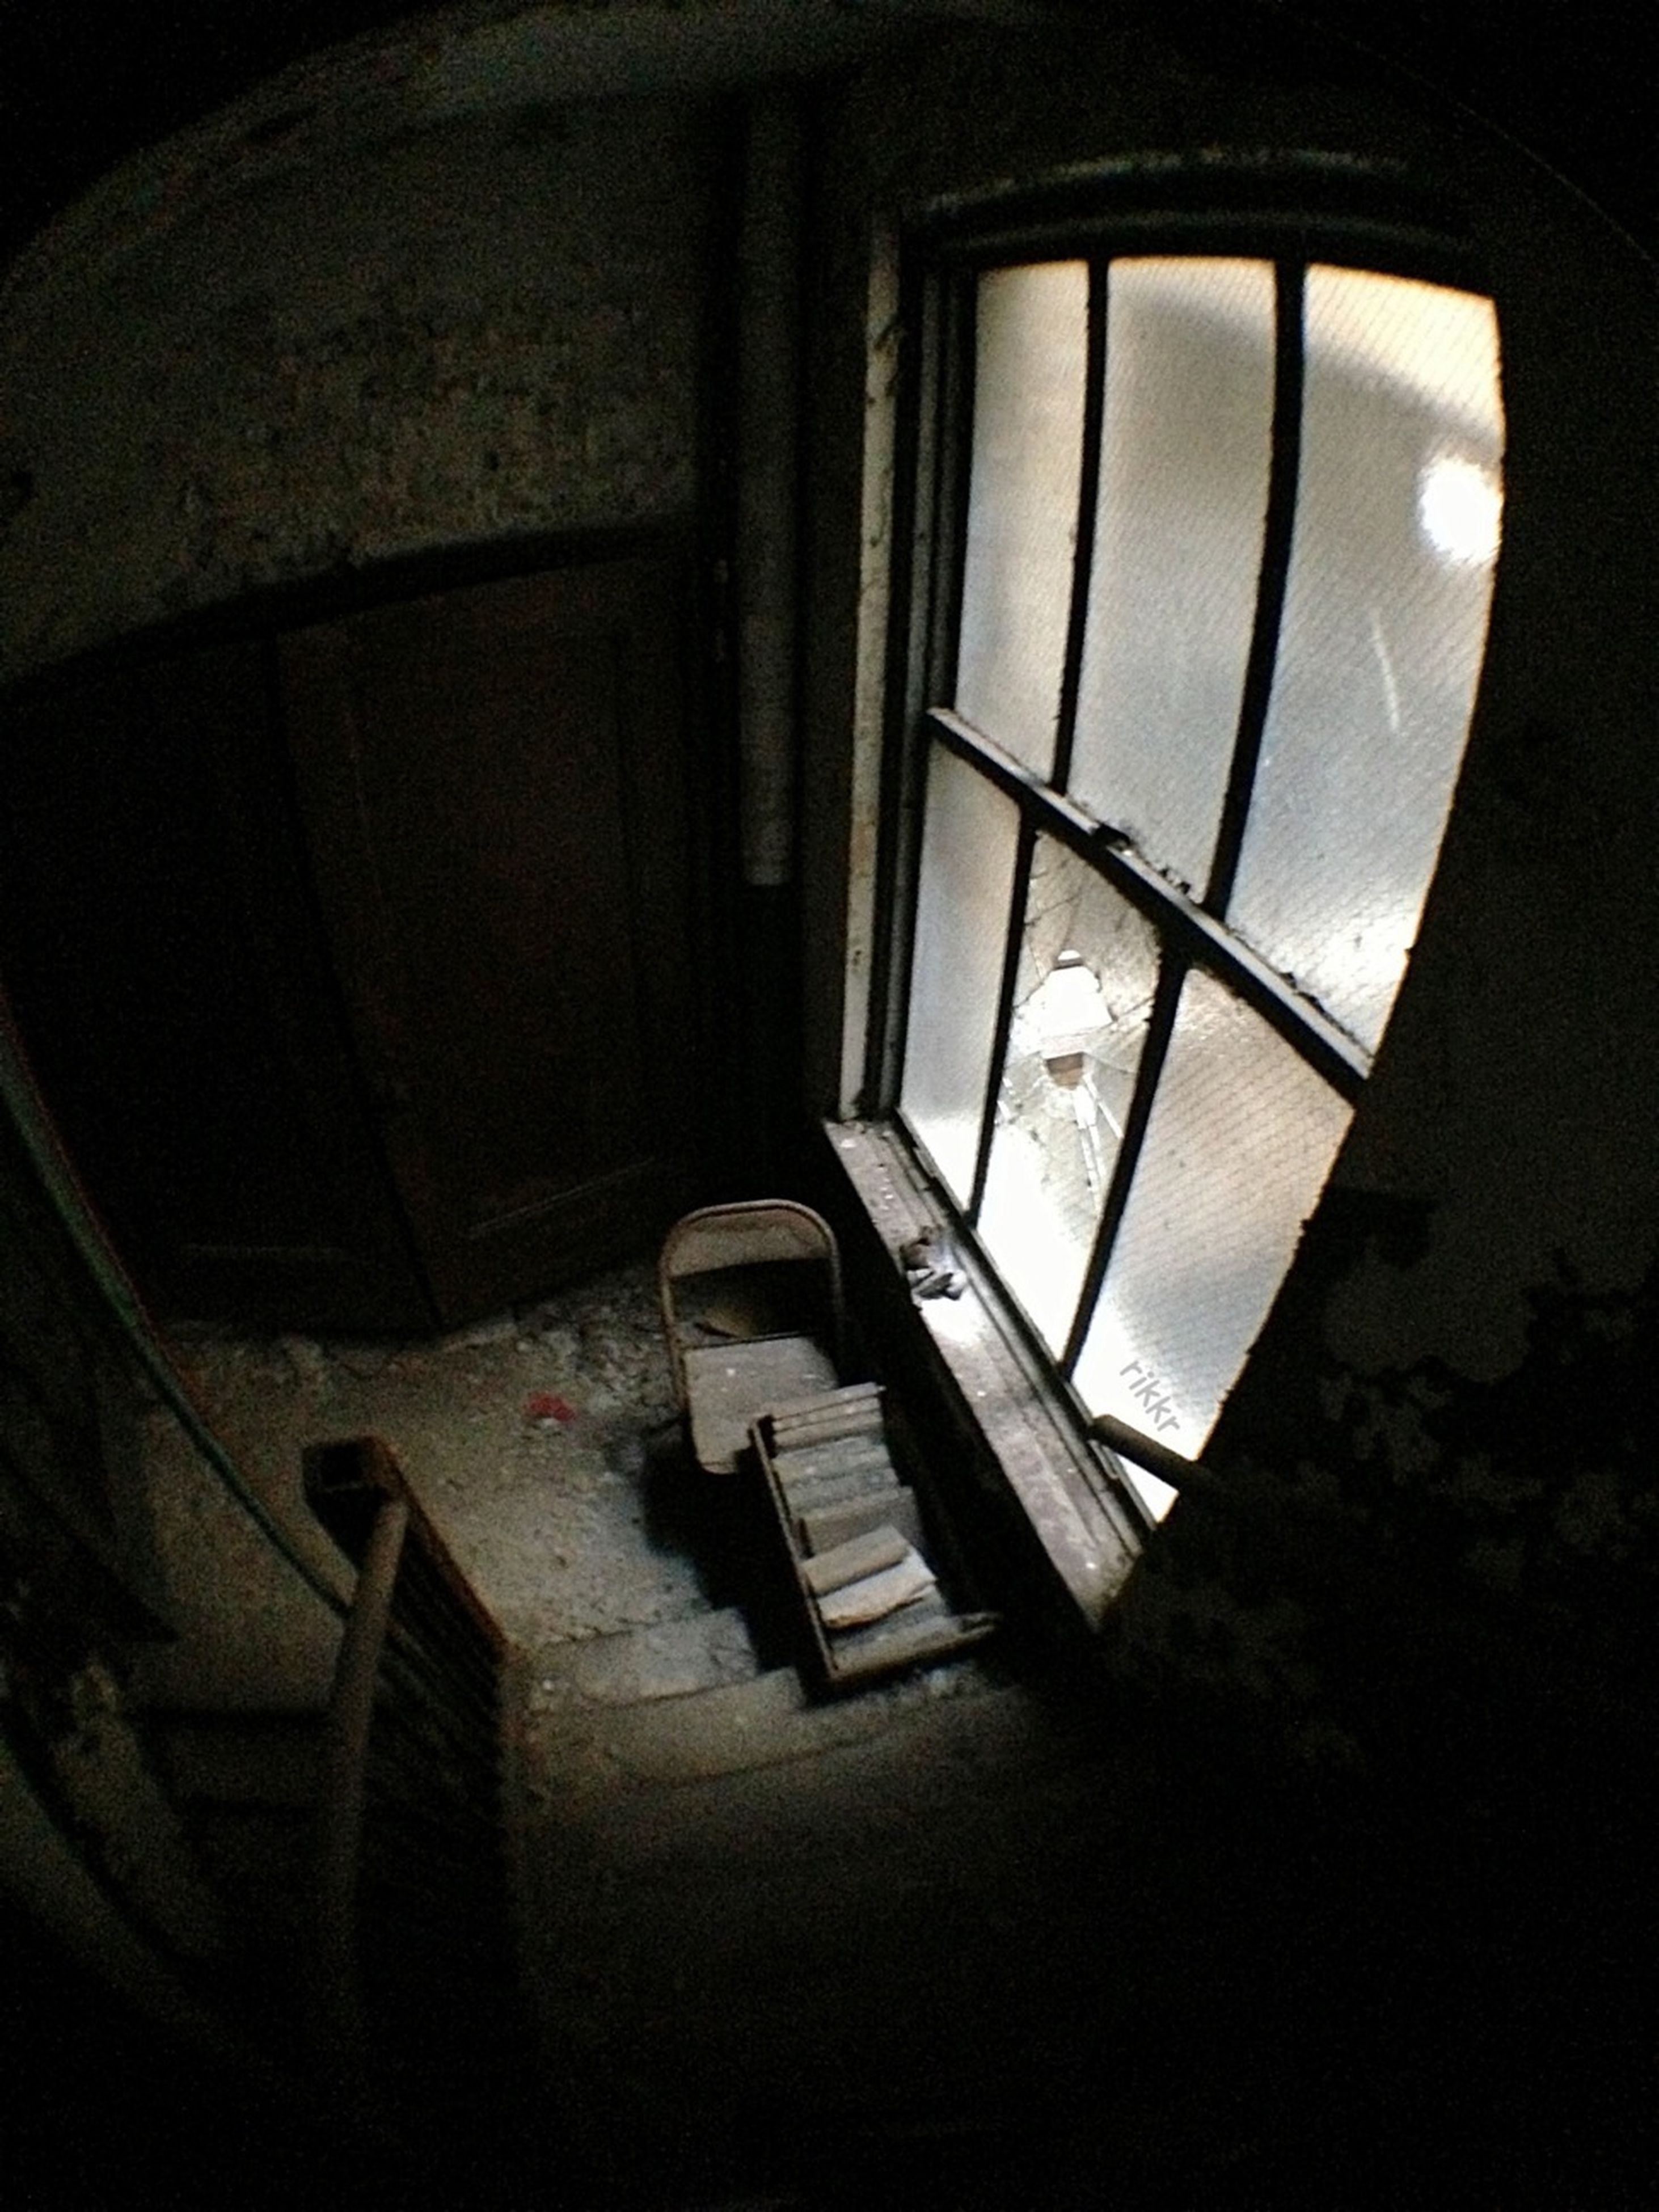 indoors, window, architecture, built structure, low angle view, interior, building, absence, no people, home interior, dark, wall - building feature, sunlight, empty, day, building exterior, wall, shadow, house, glass - material